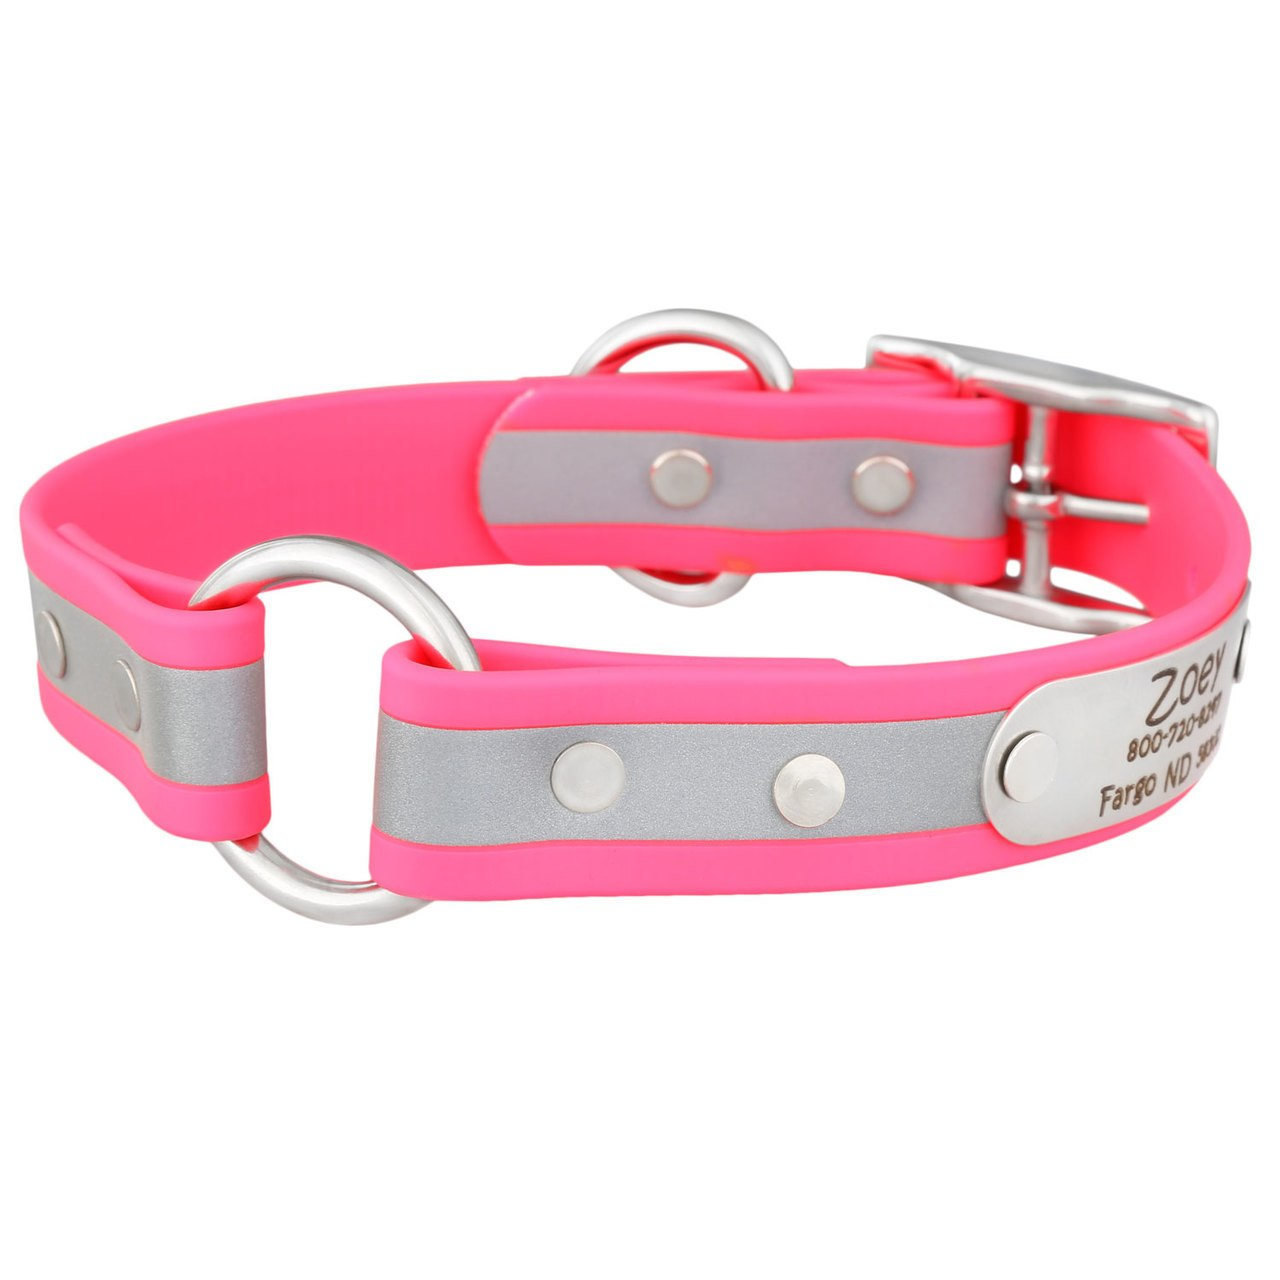 Personalized Waterproof Reflective Safety Dog Collar Pink